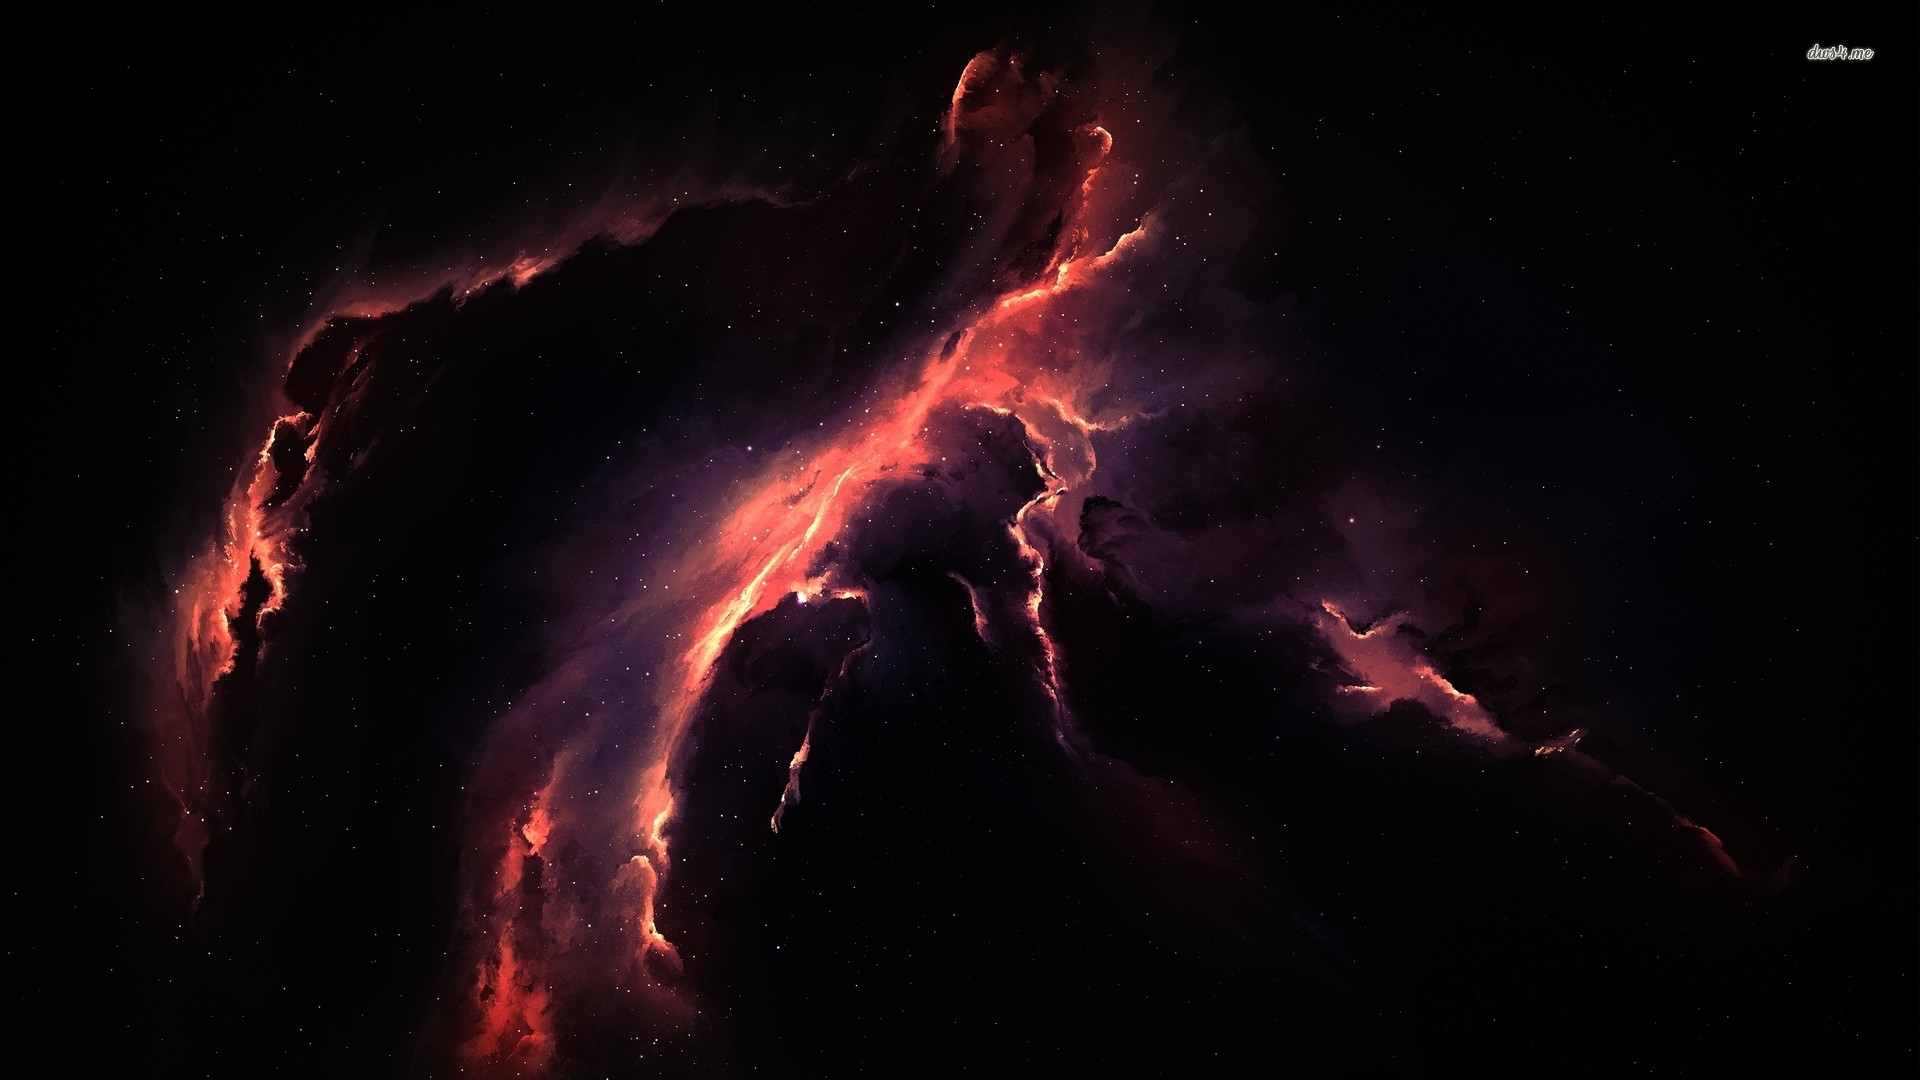 Black Hole Animated Wallpaper 1366x768 Space Wallpaper 79 Images